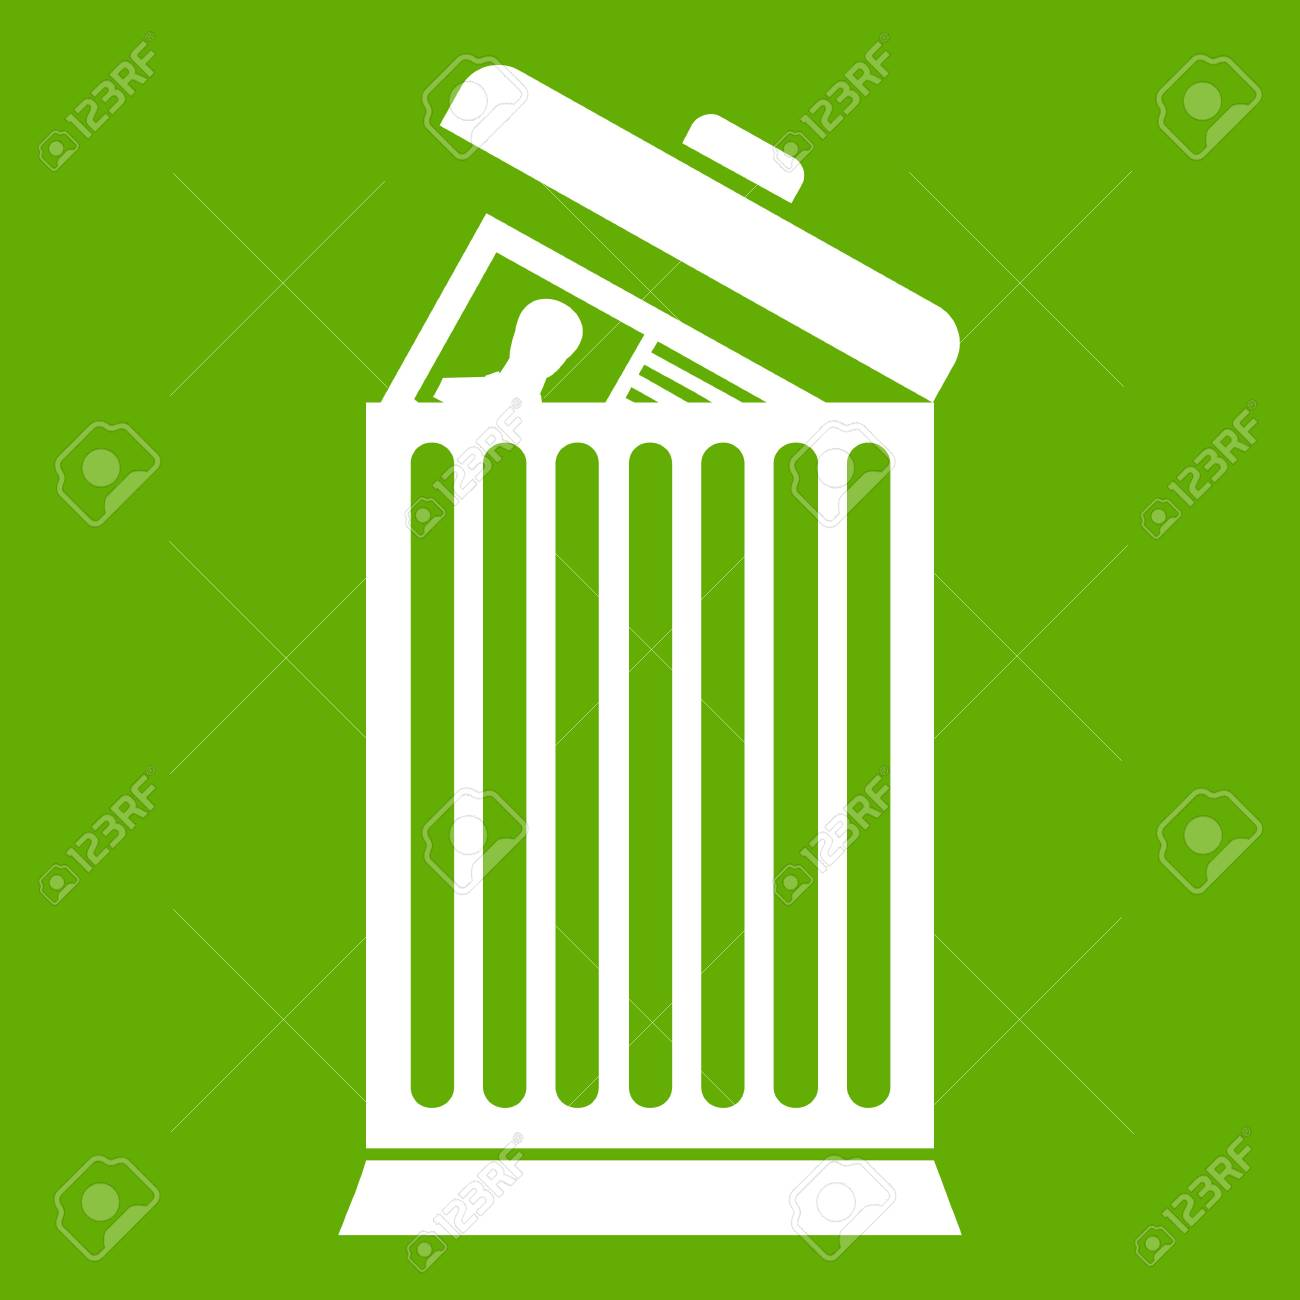 resume thrown away in the trash can icon white isolated on green